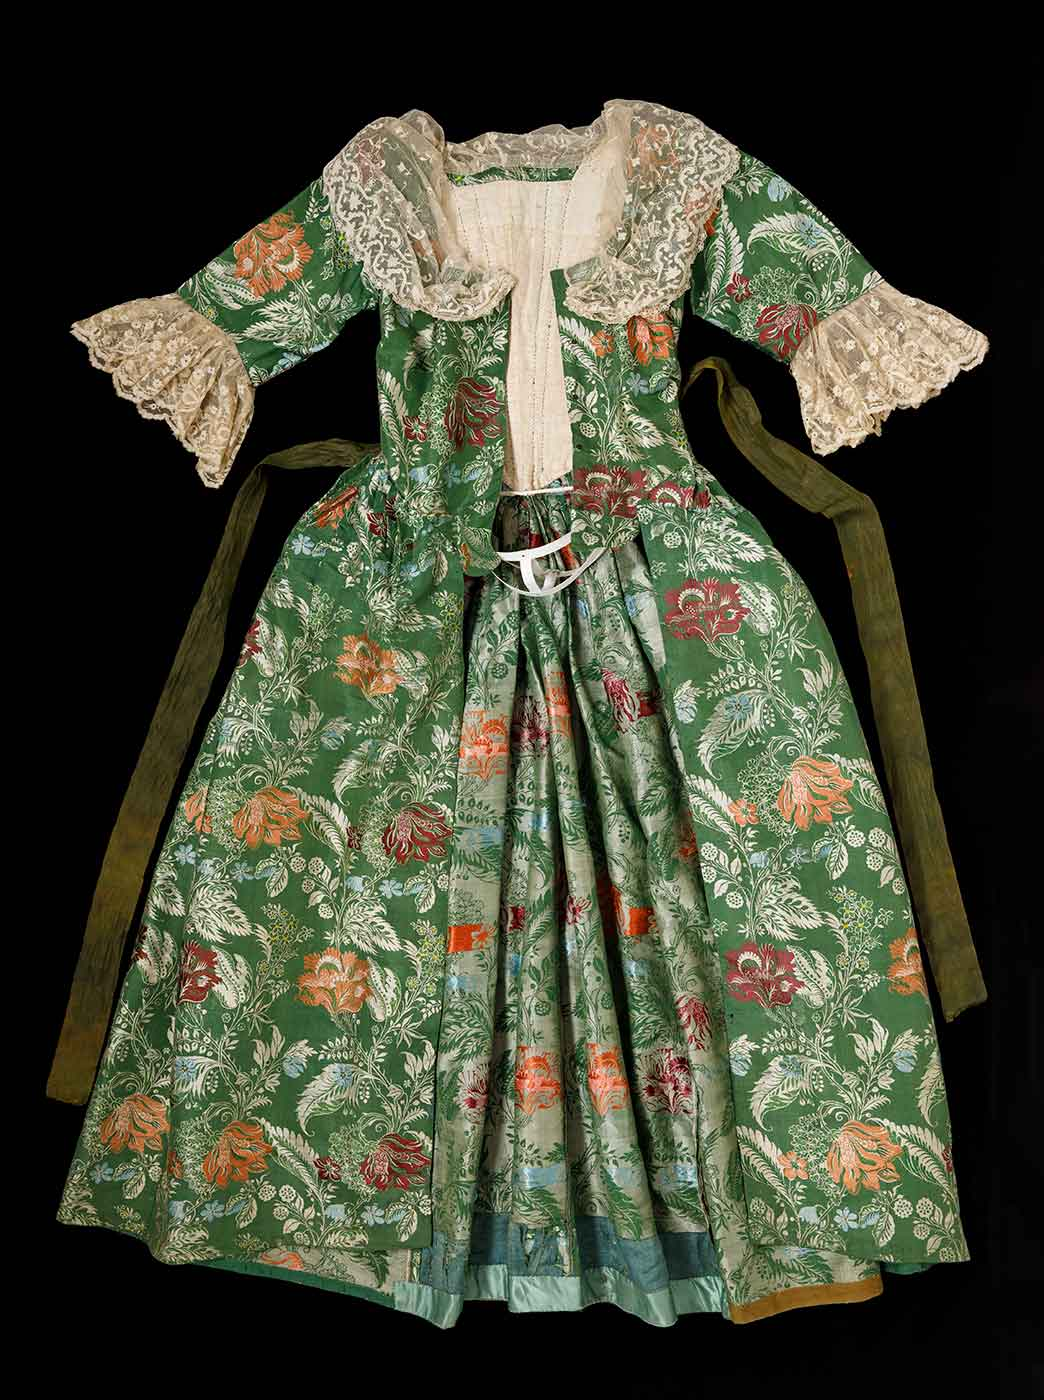 The front of a green and floral dress with lace trim on the sleeves and collar with a long green sash like belt stitched at the waist. - click to view larger image